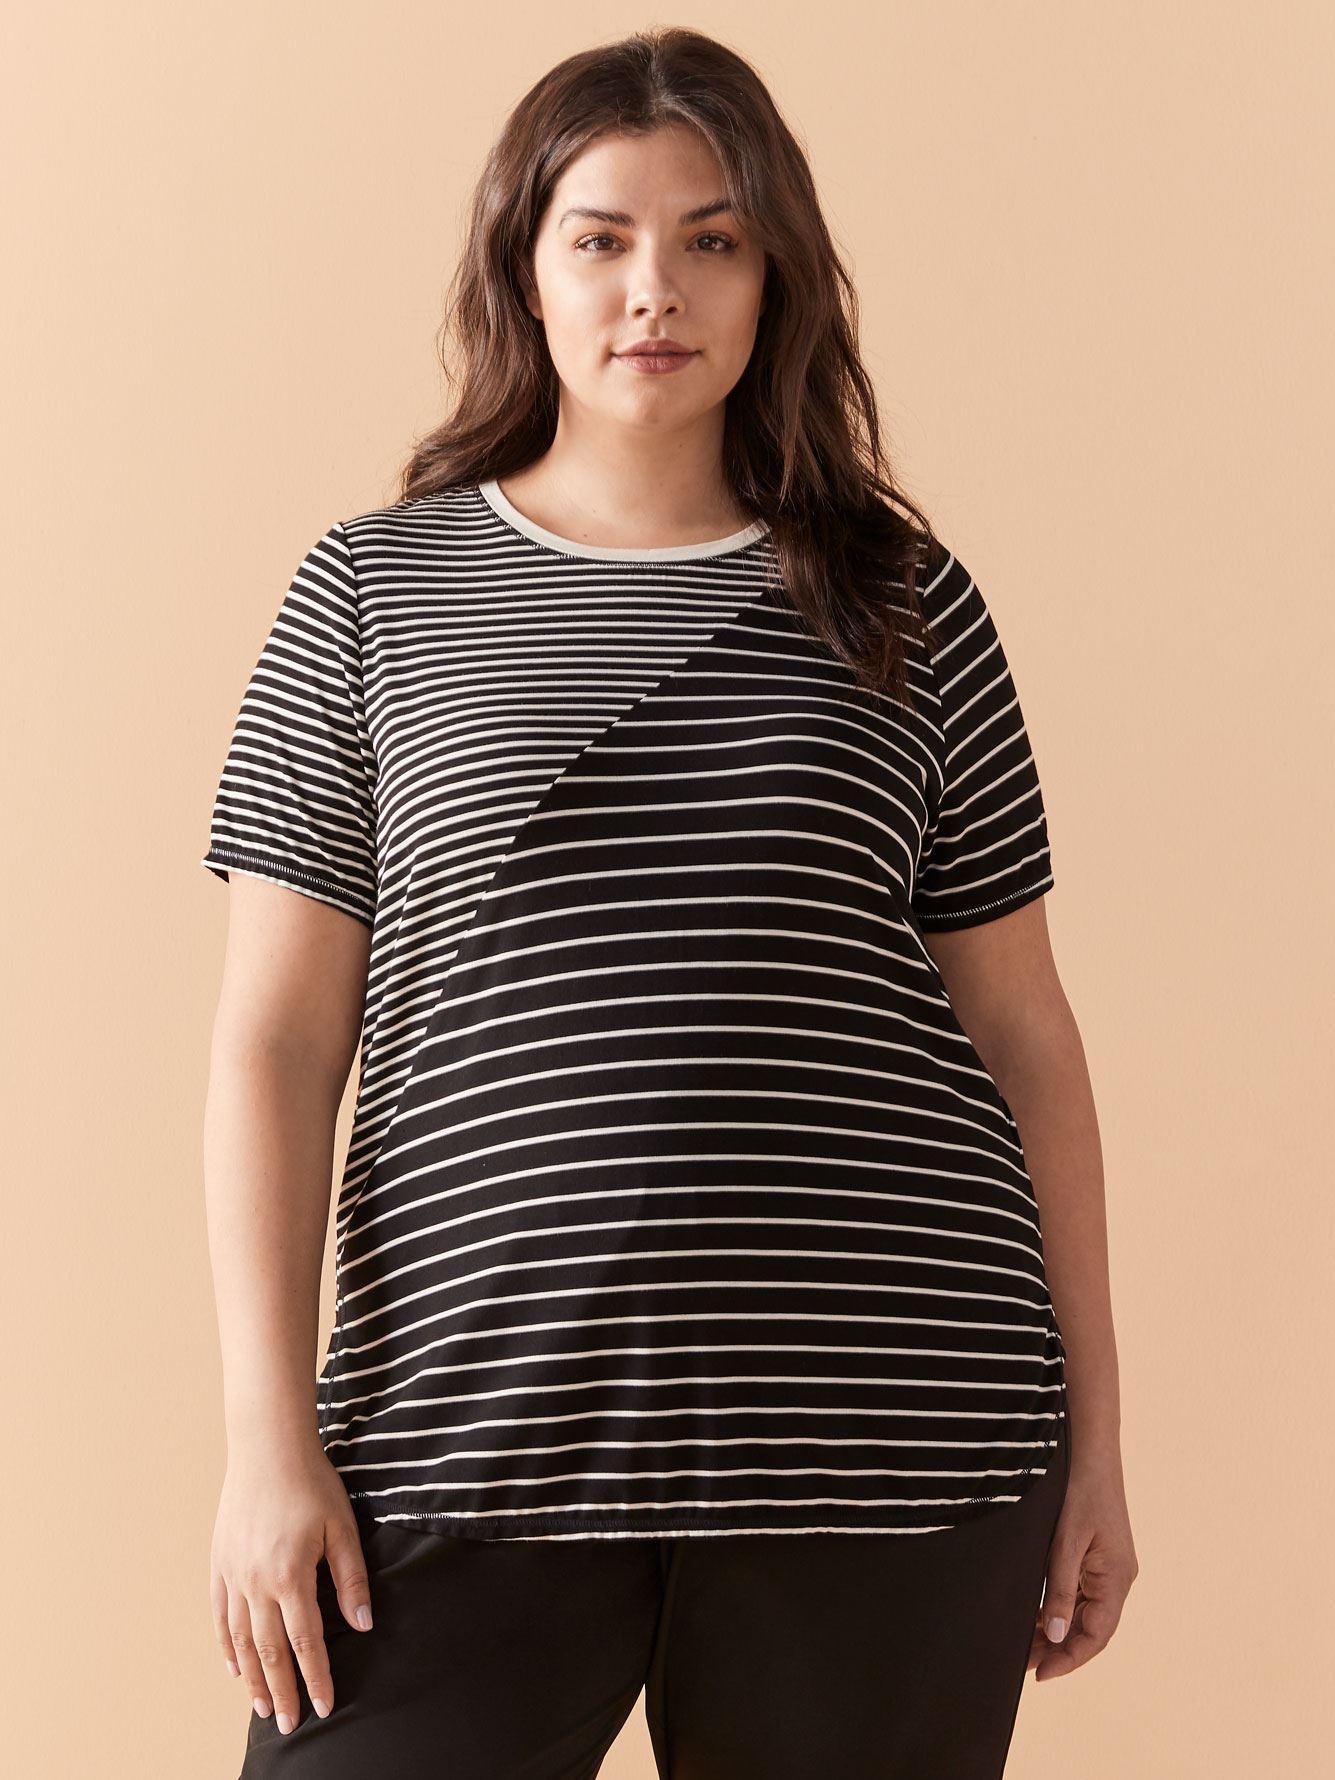 Yarn Dye Striped T-Shirt - ActiveZone